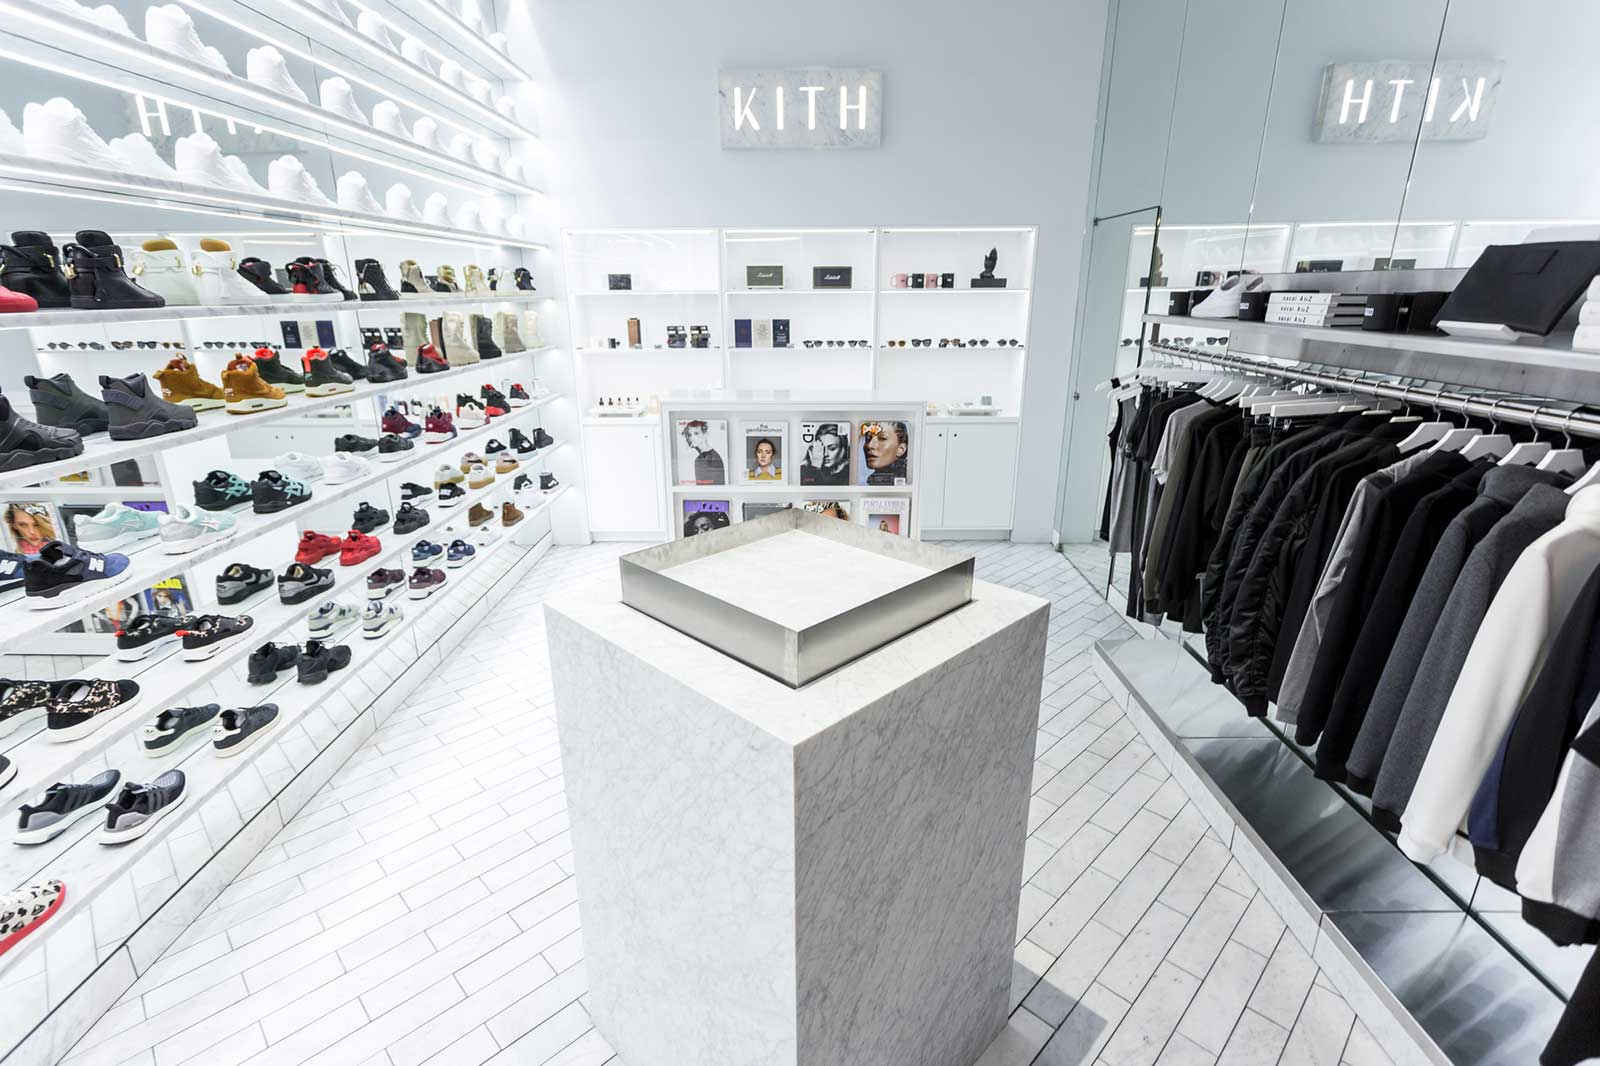 The Kith Women's Store at 64 Bleecker St